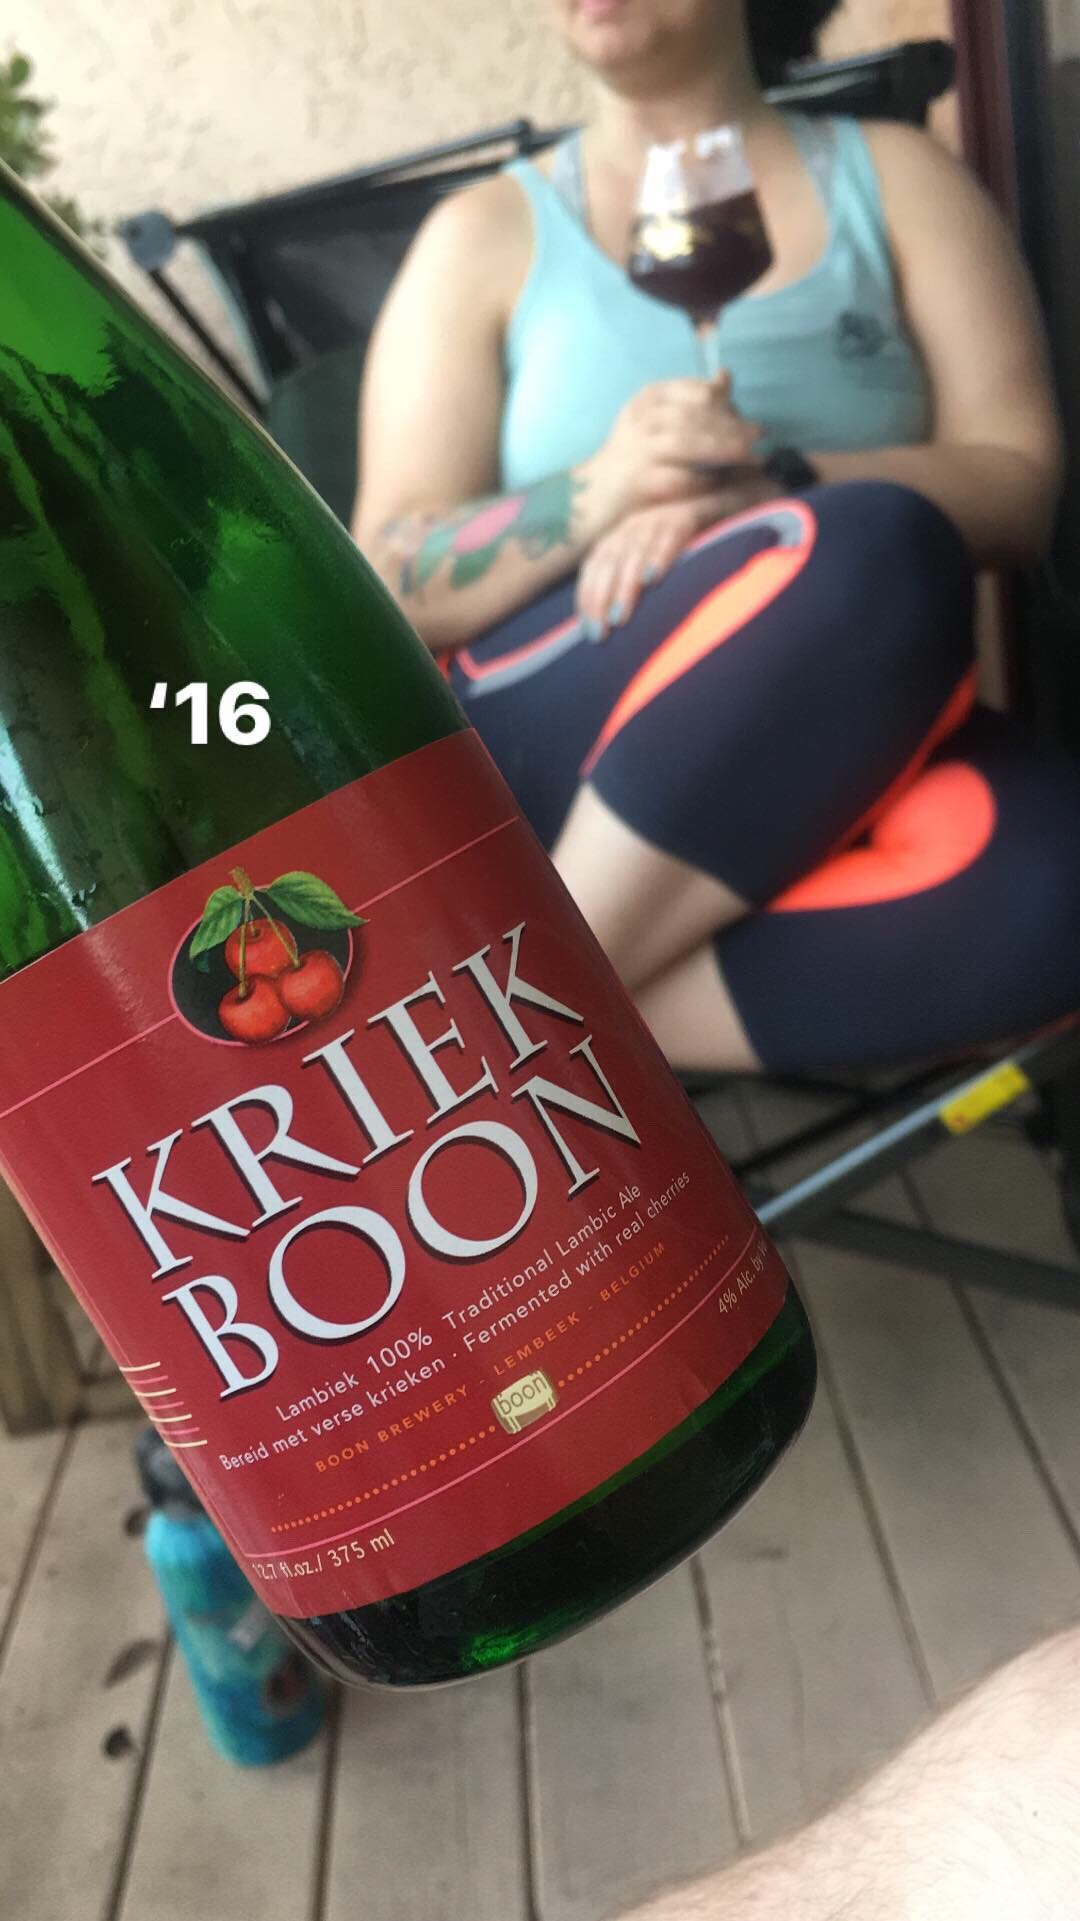 kriek boon on the porch